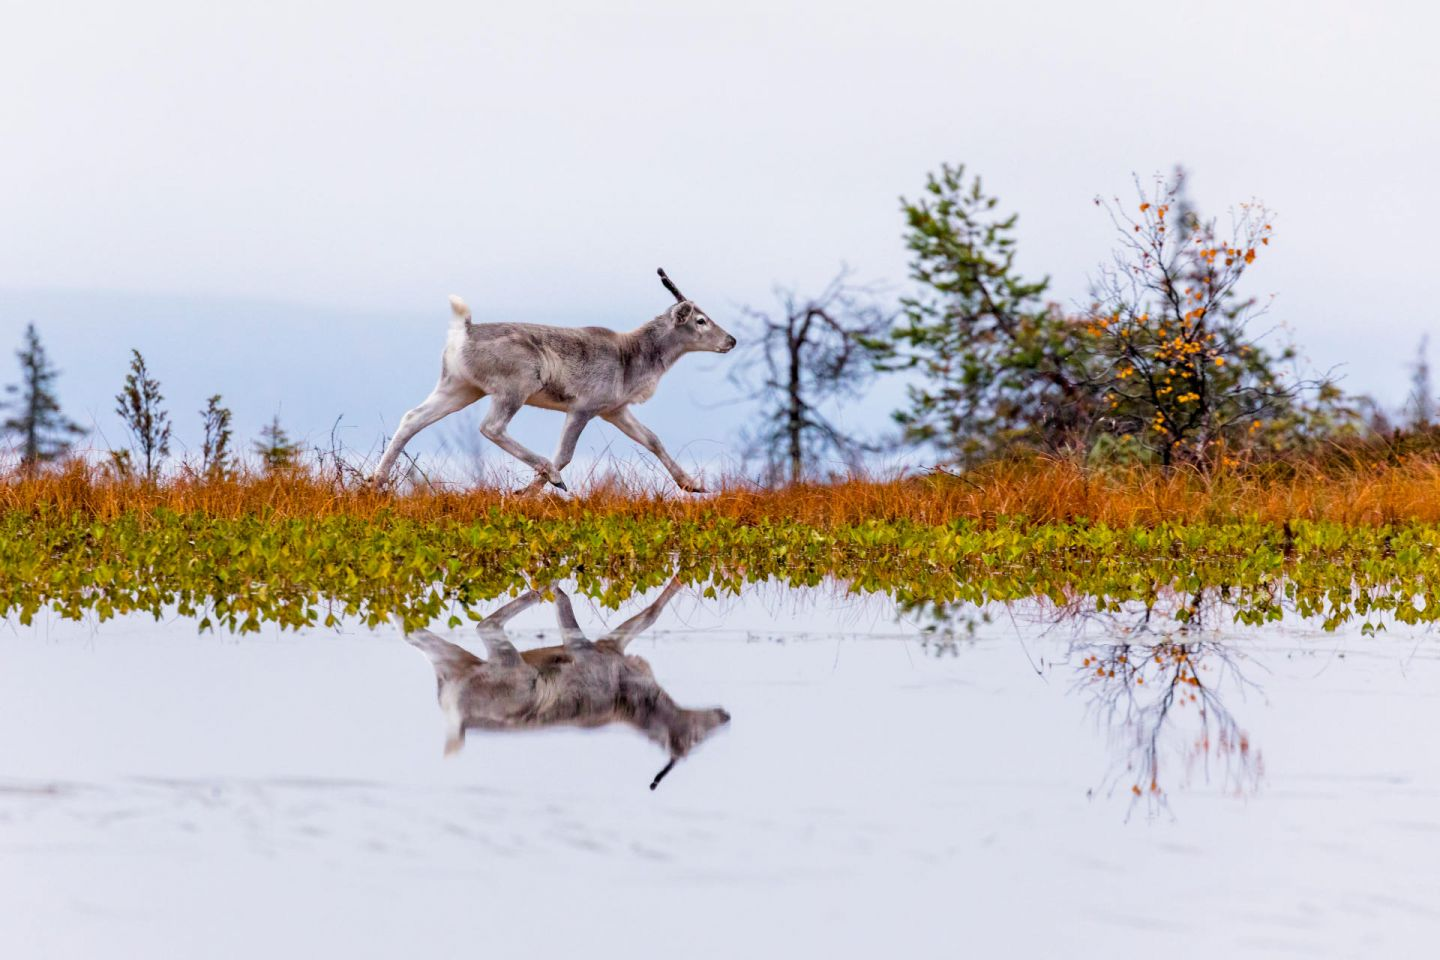 Reindeer reflected in the water, from the film Ailo's Journey, filmed in Finnish Lapland